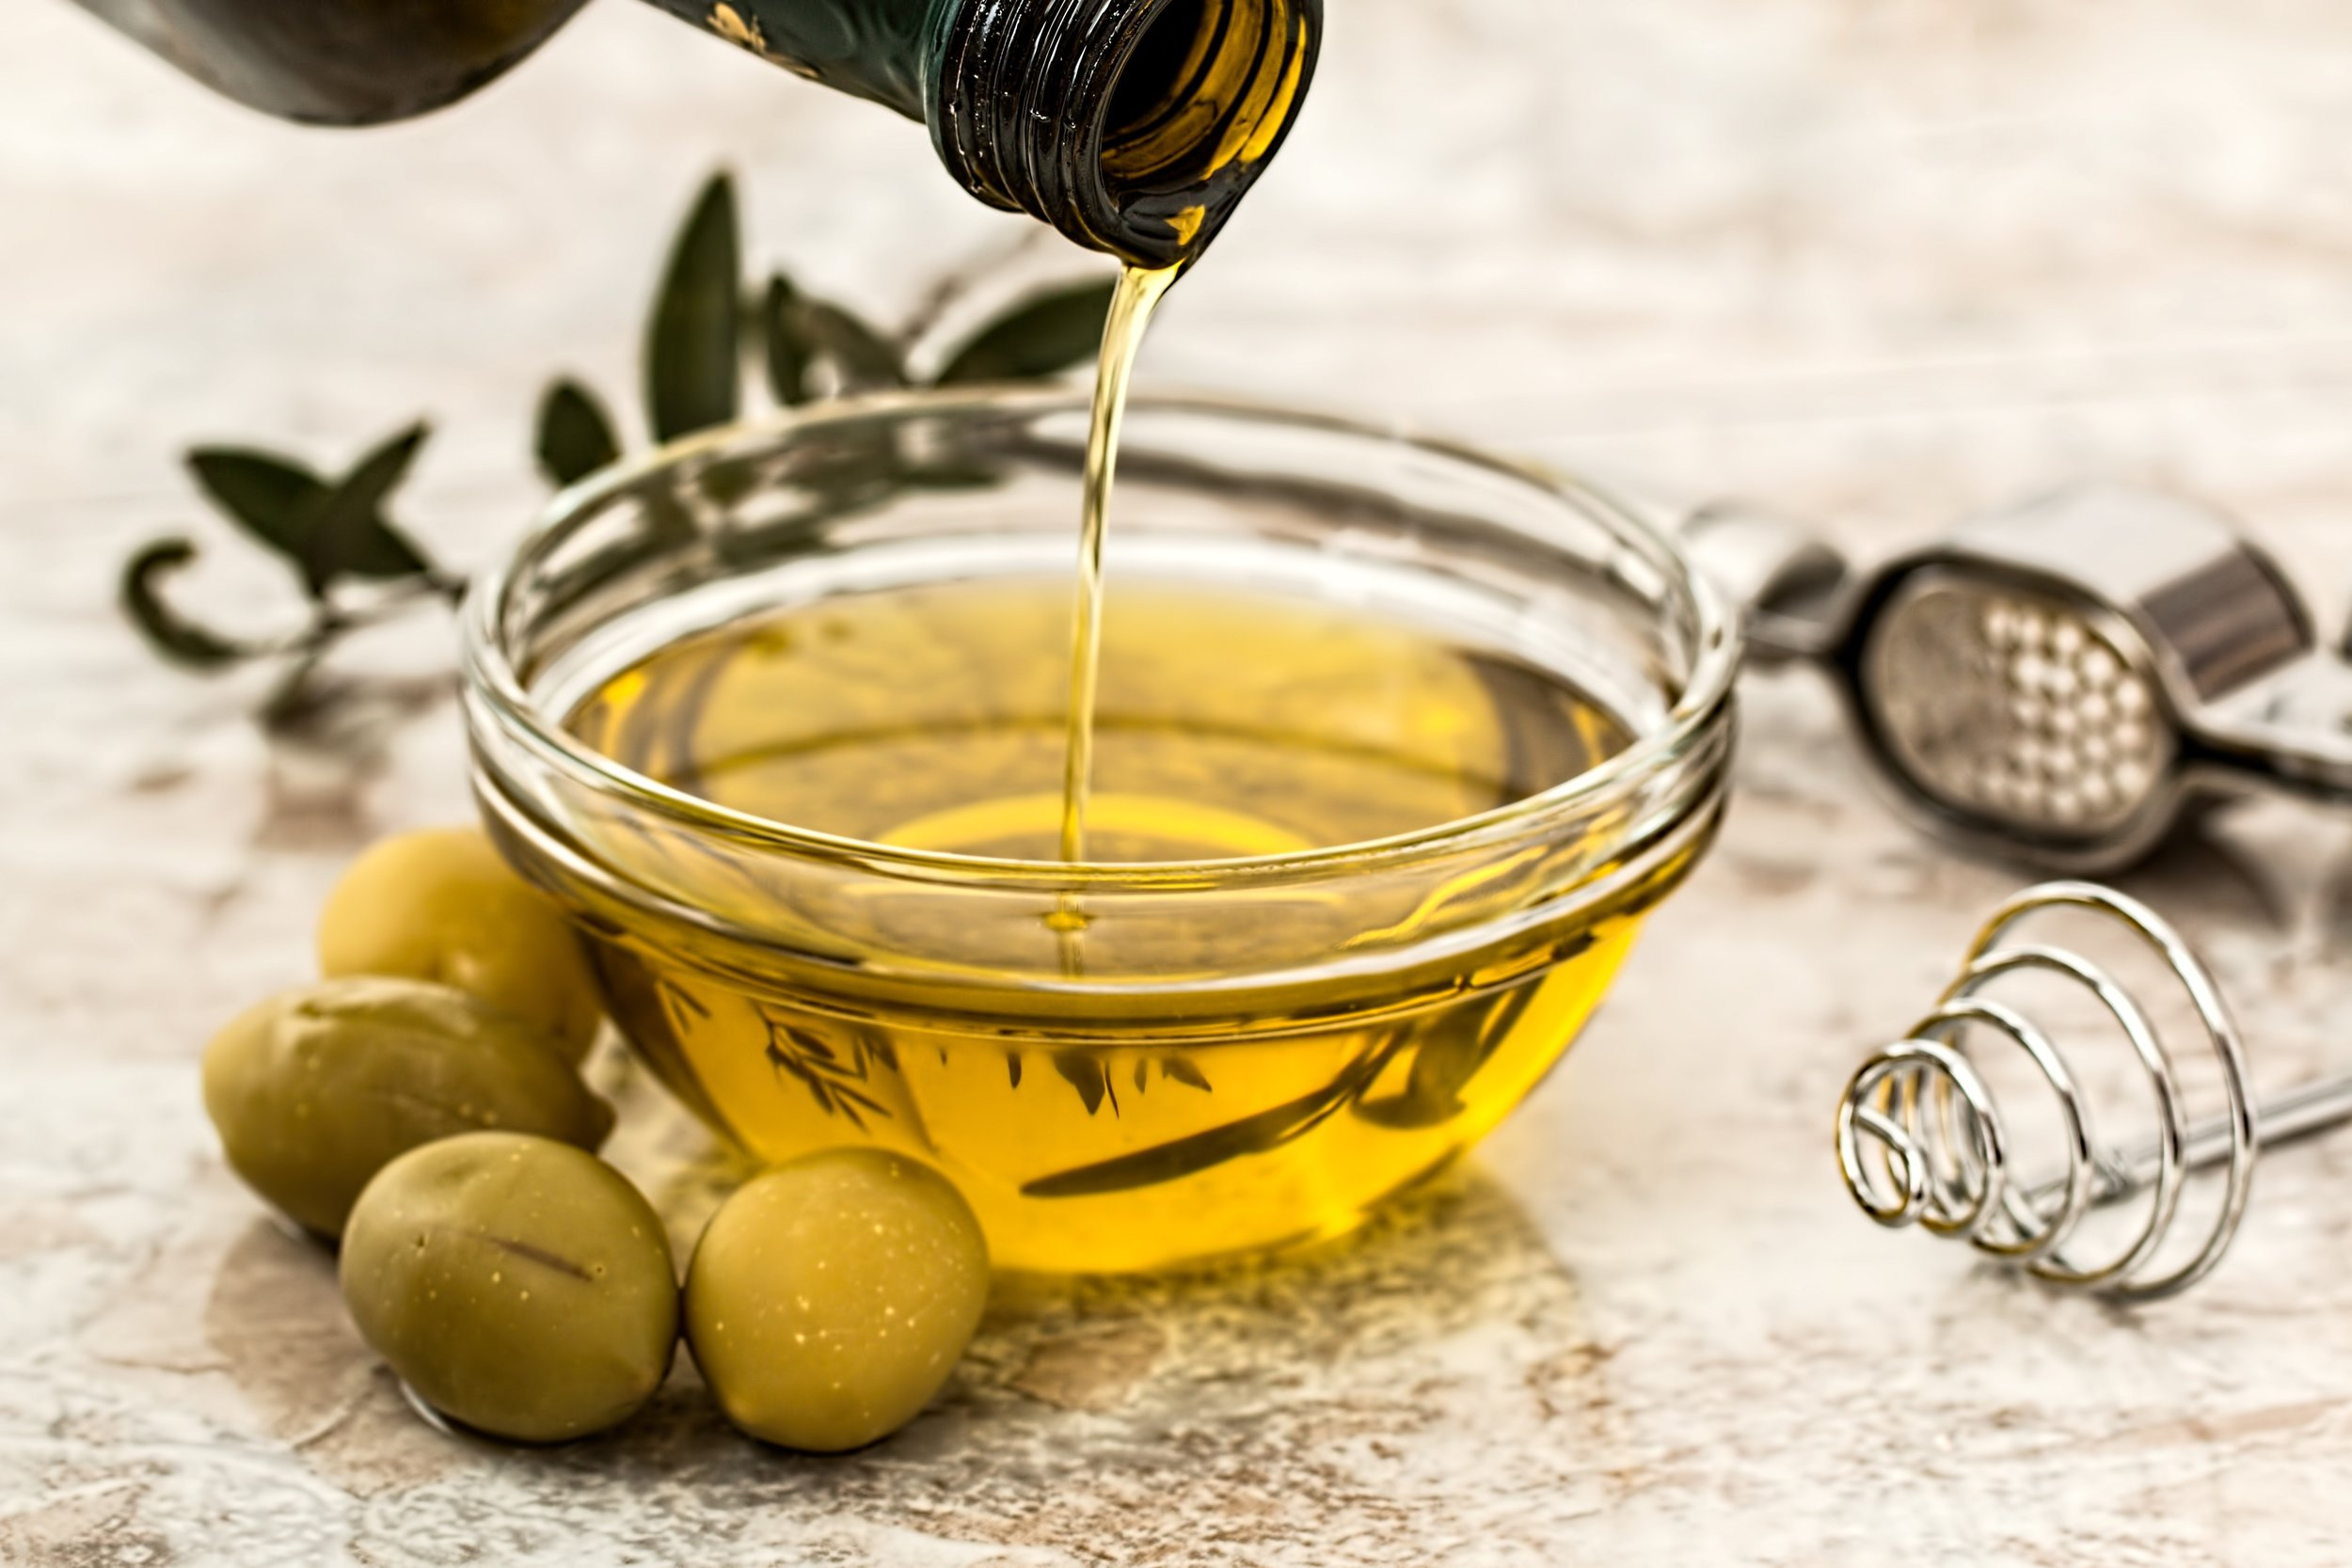 Dry store - Green Olives with stone in salamoia, Green Olives without stone in salamoia, Capers in salt, San Francesco Balsamic Vinegar, Glazed Balsamic Vinegar, Extra Virgin Olive oil Gran Felice, Lentils, Hazelnuts and much more. Download the full product list HERE